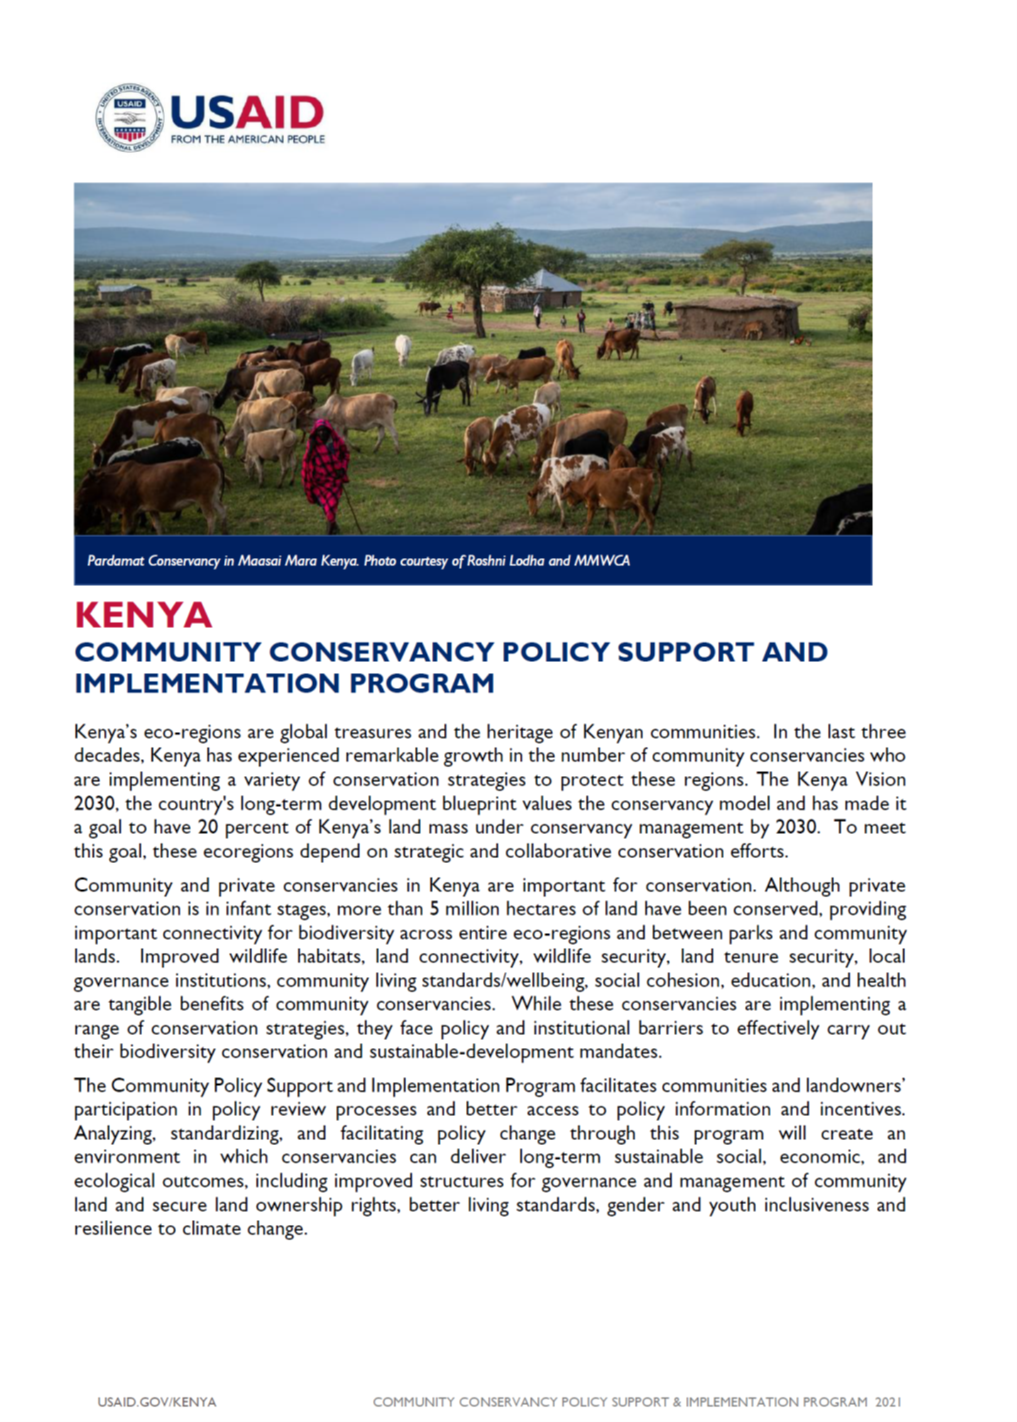 Community Policy Support and Implementation Program fact sheet